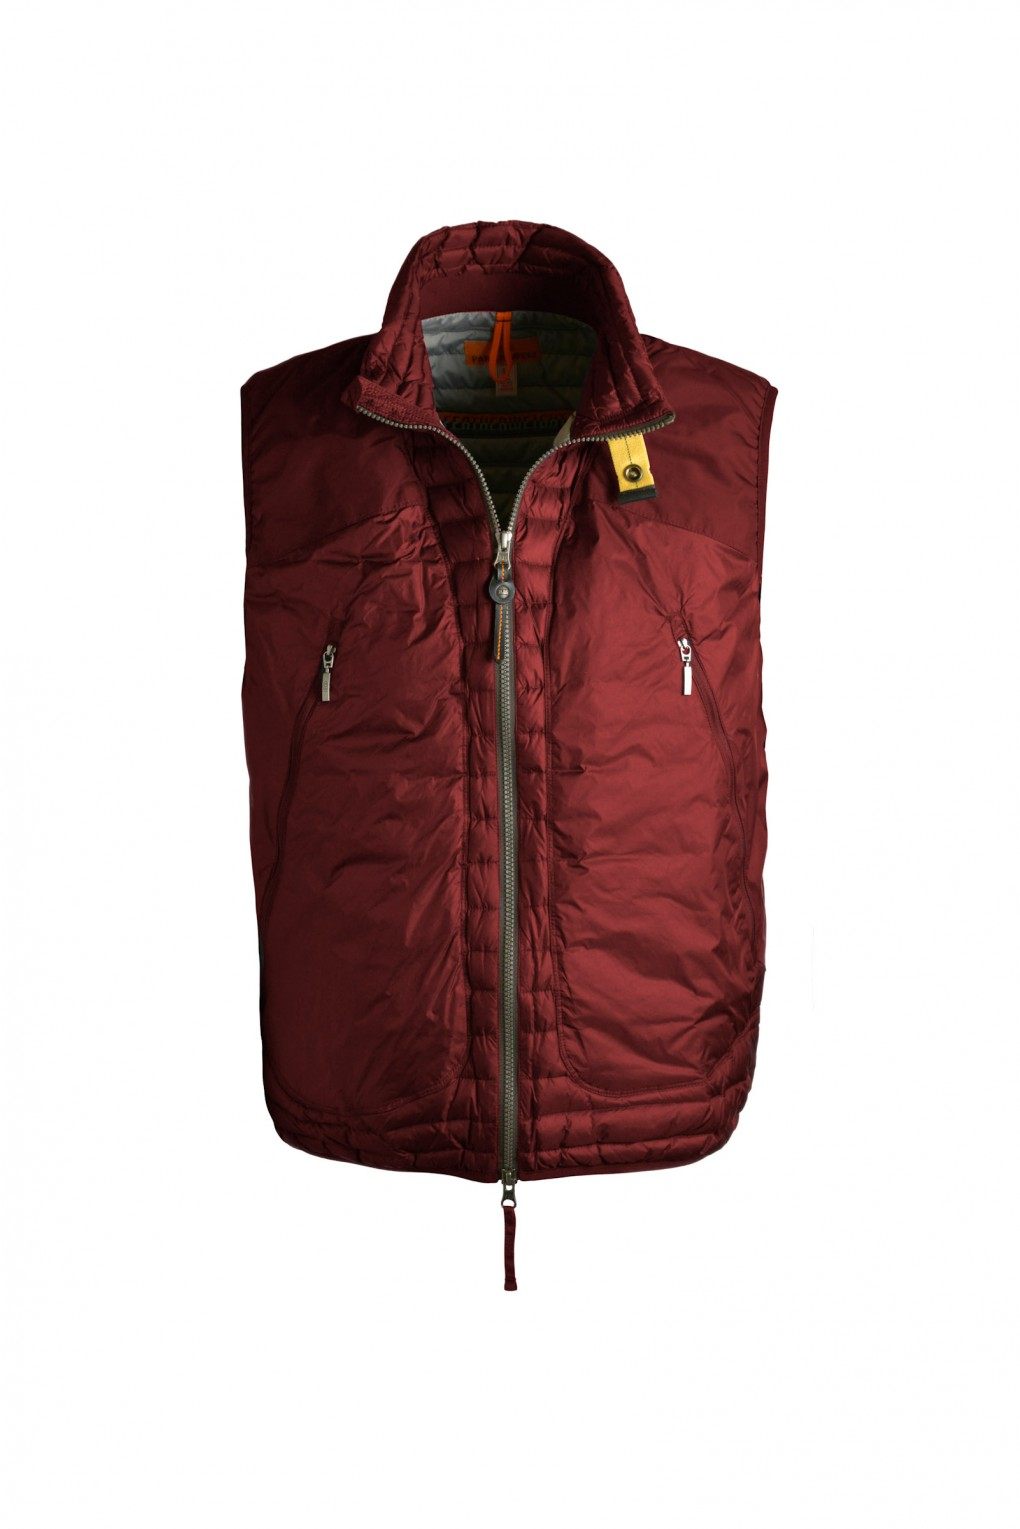 parajumpers HERMANN man outerwear Red